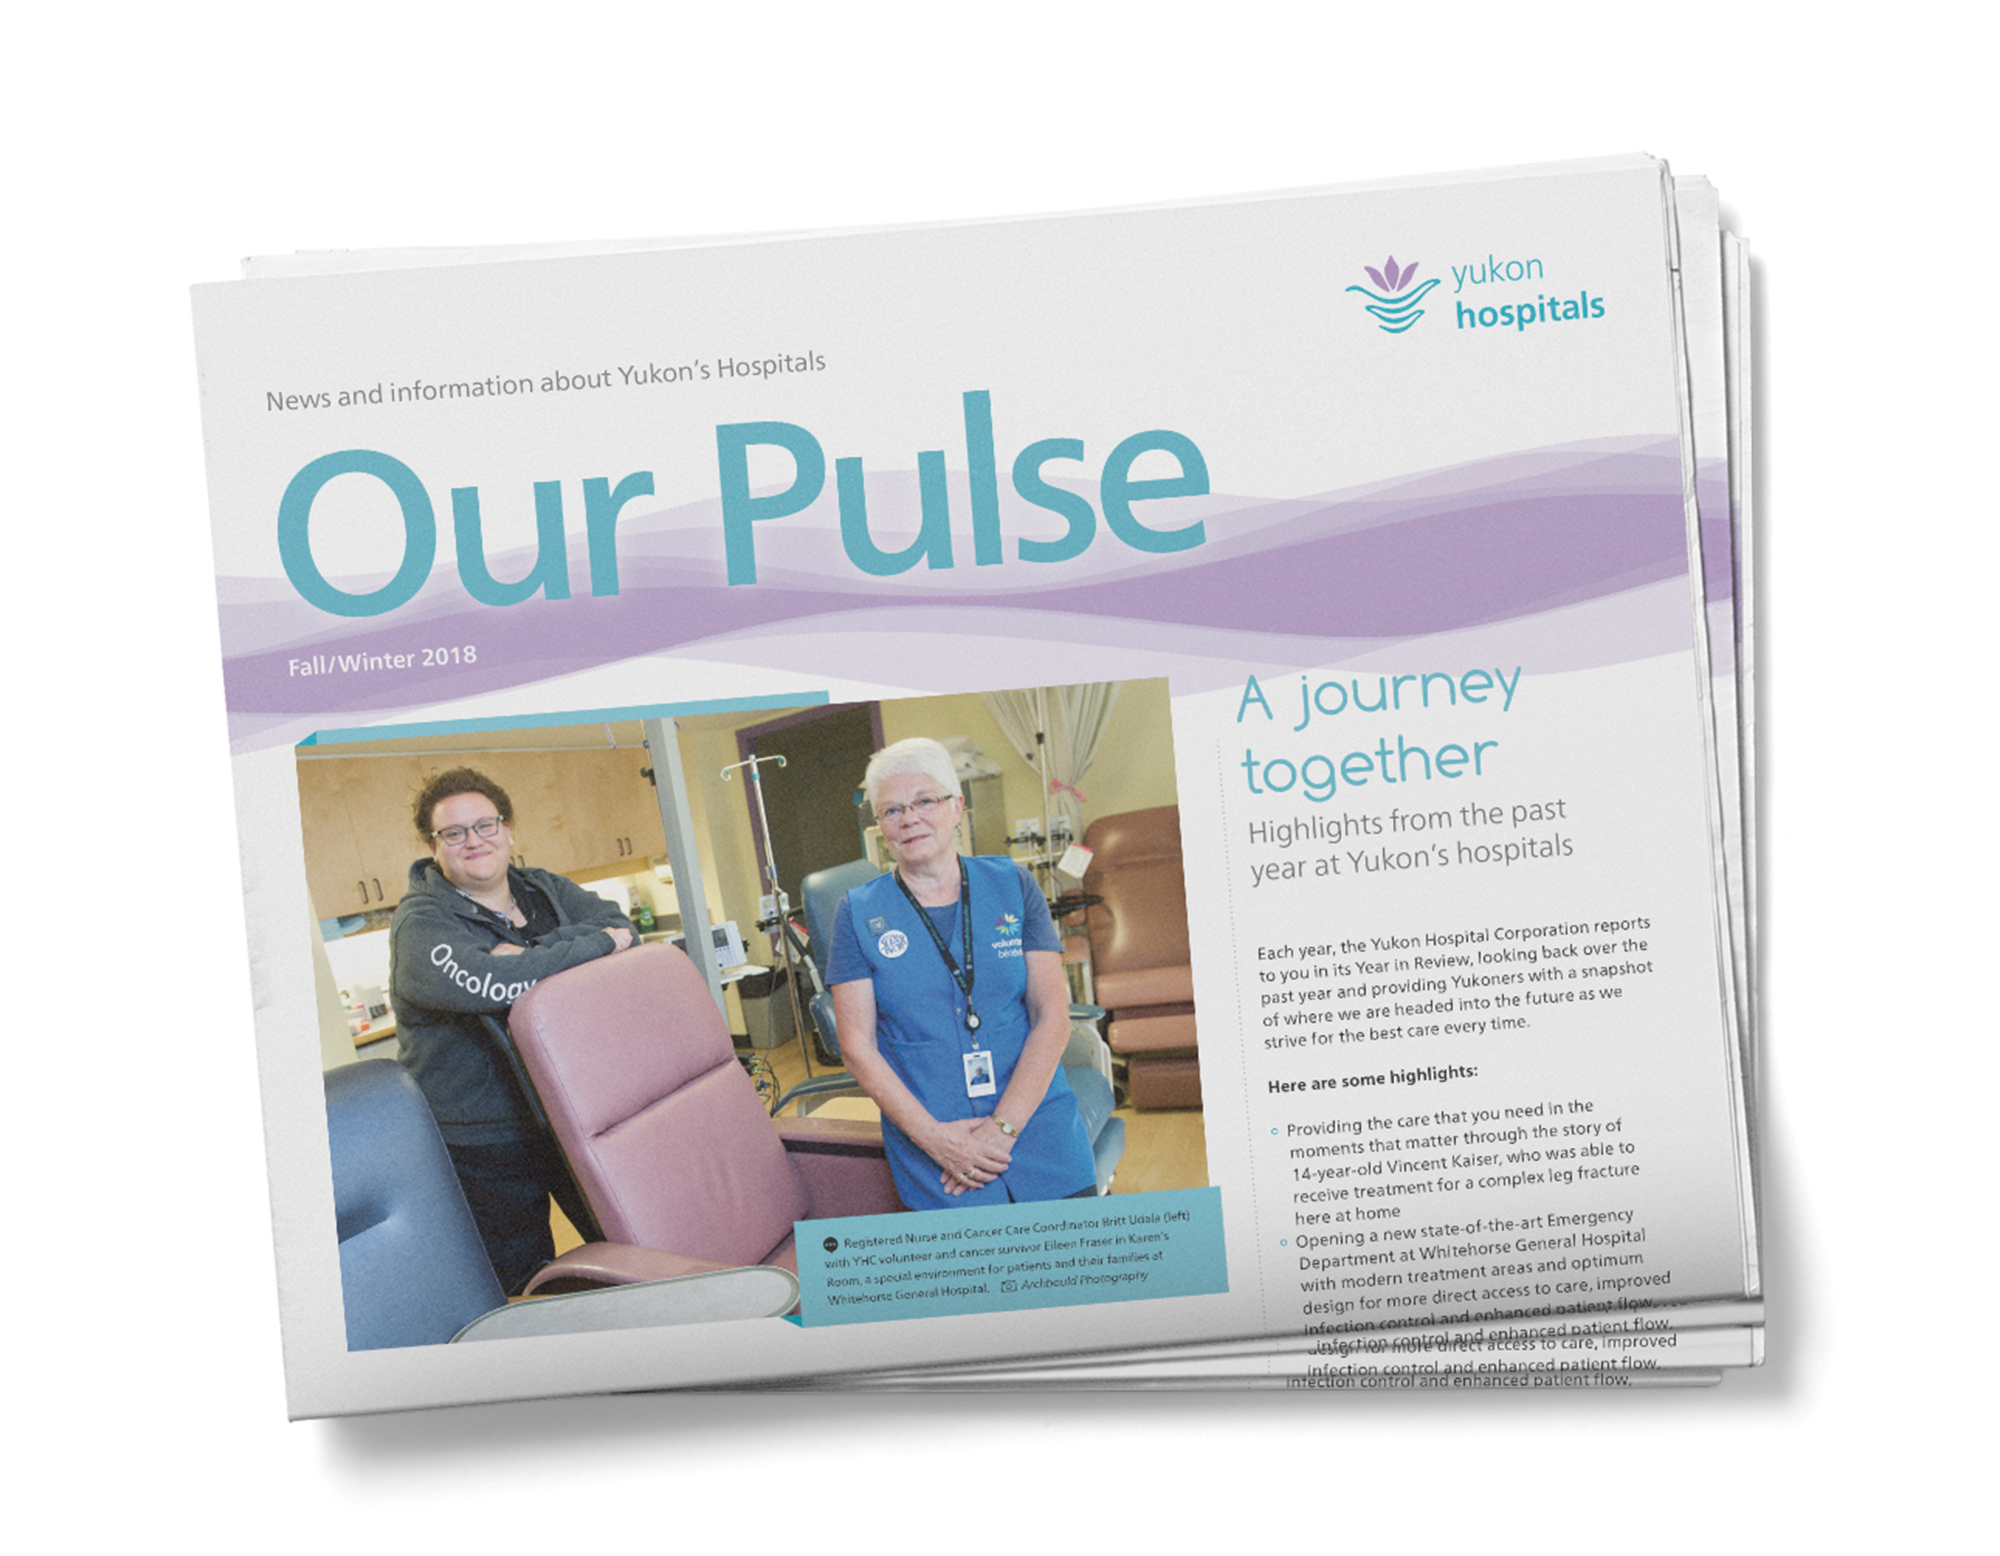 Print sample of newsletter design showing folded cover for the Yukon Hospitals.